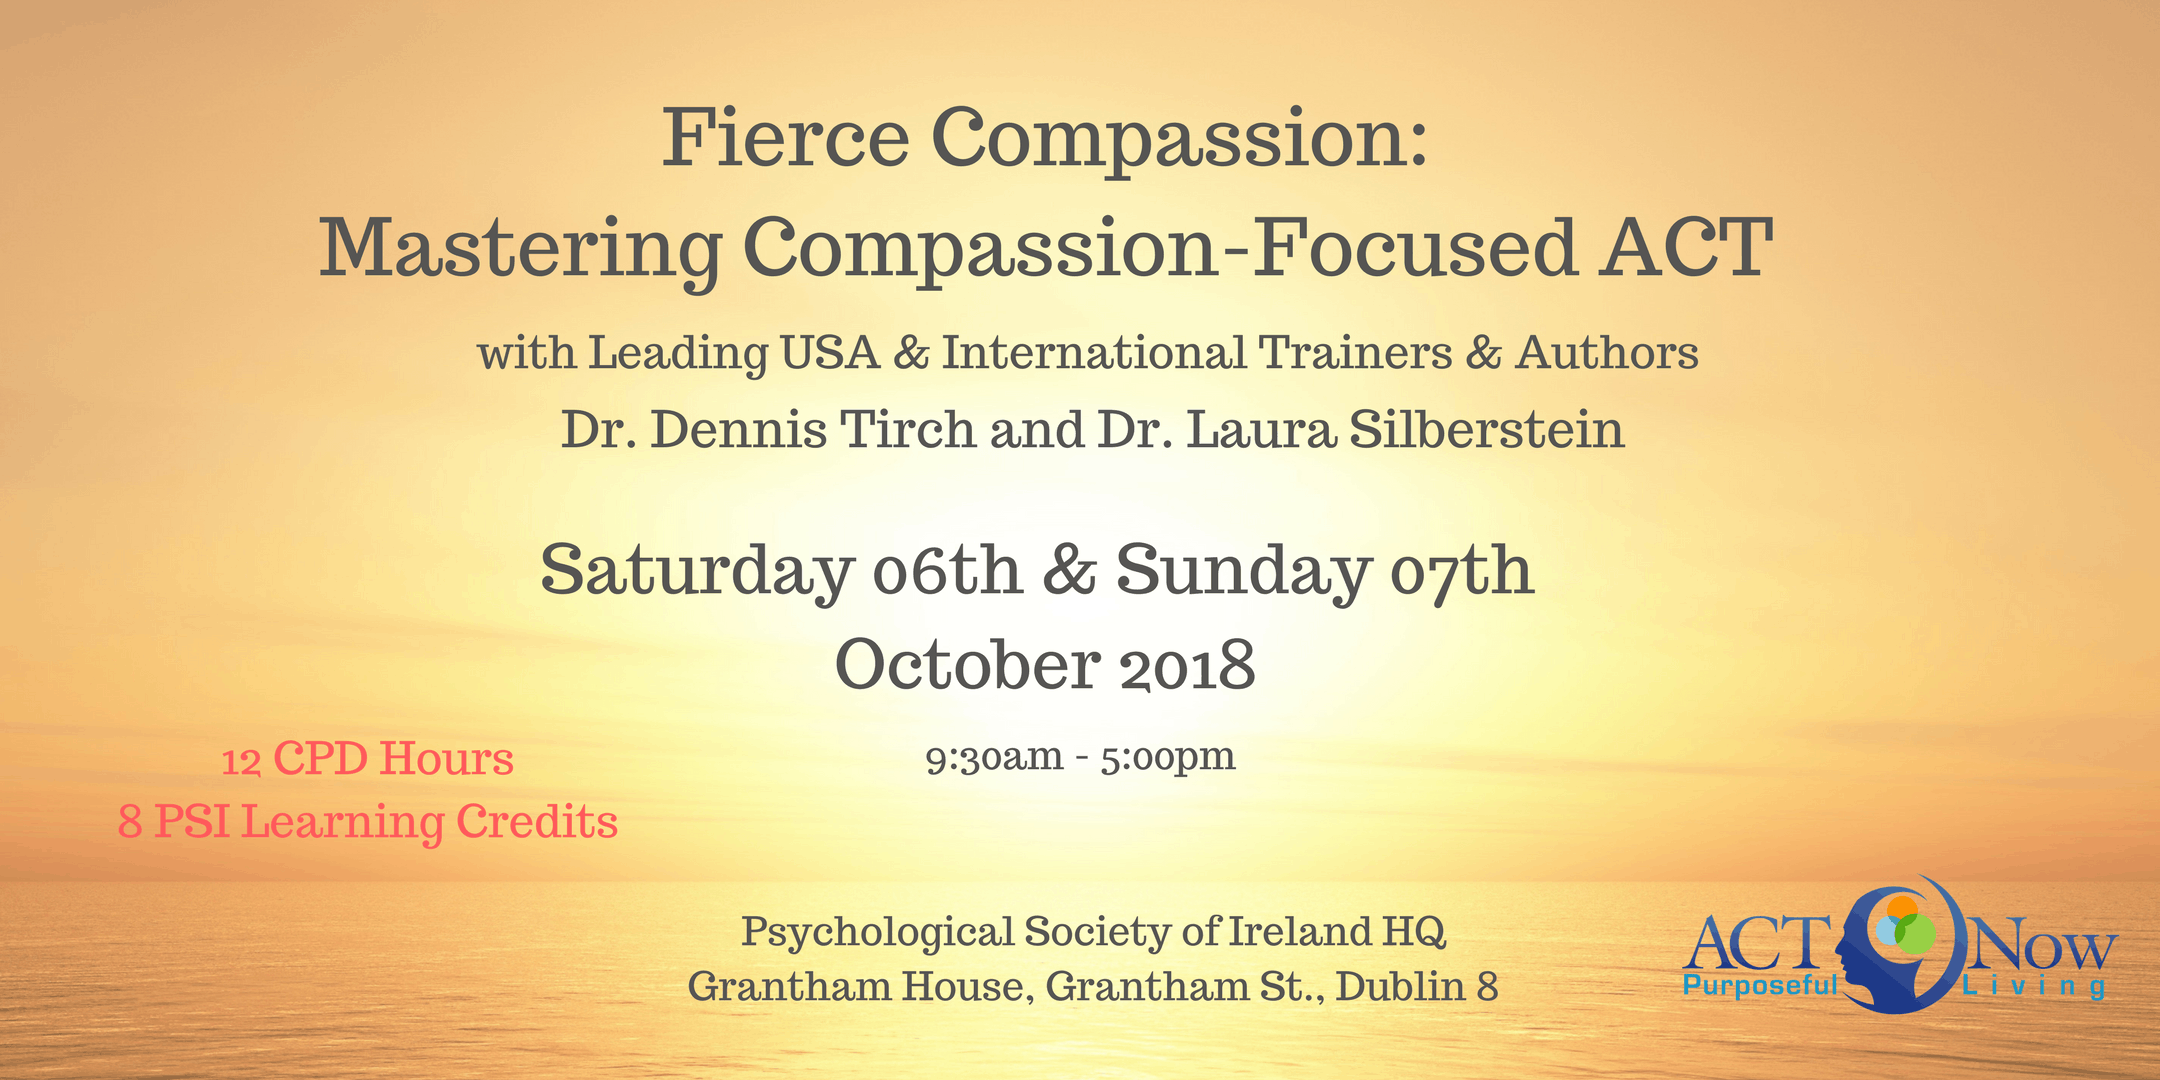 2-Day Fierce Compassion: Mastering Compassion-Focused ACT with Leading US Trainers and International Authors Dr. Dennis Tirch and Dr. Laura Silberstein